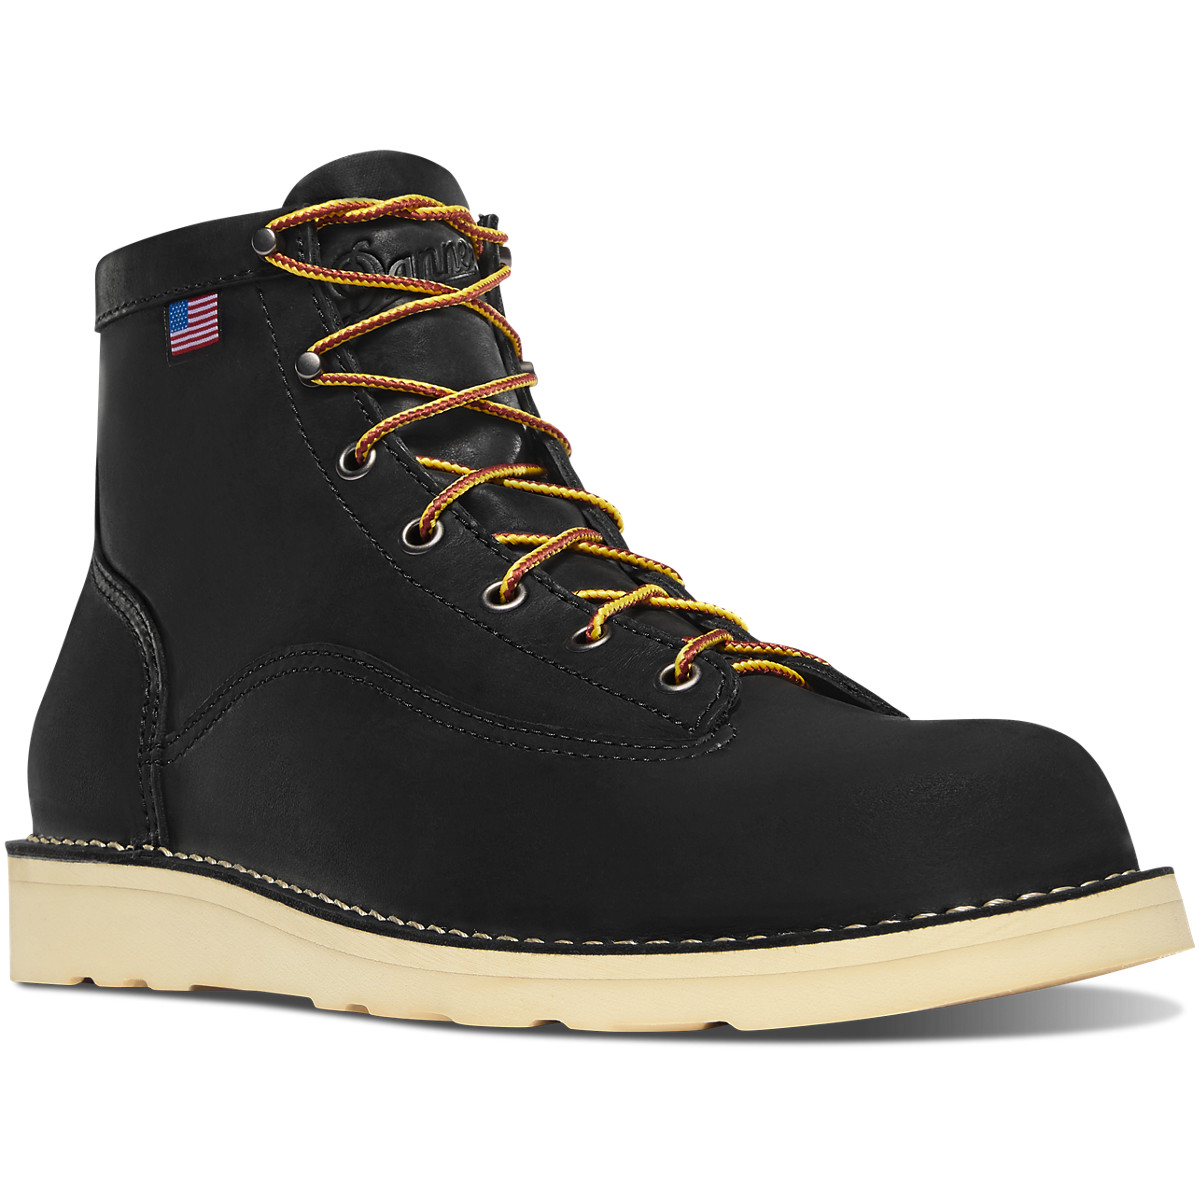 danner boots Men's Bull Run blk